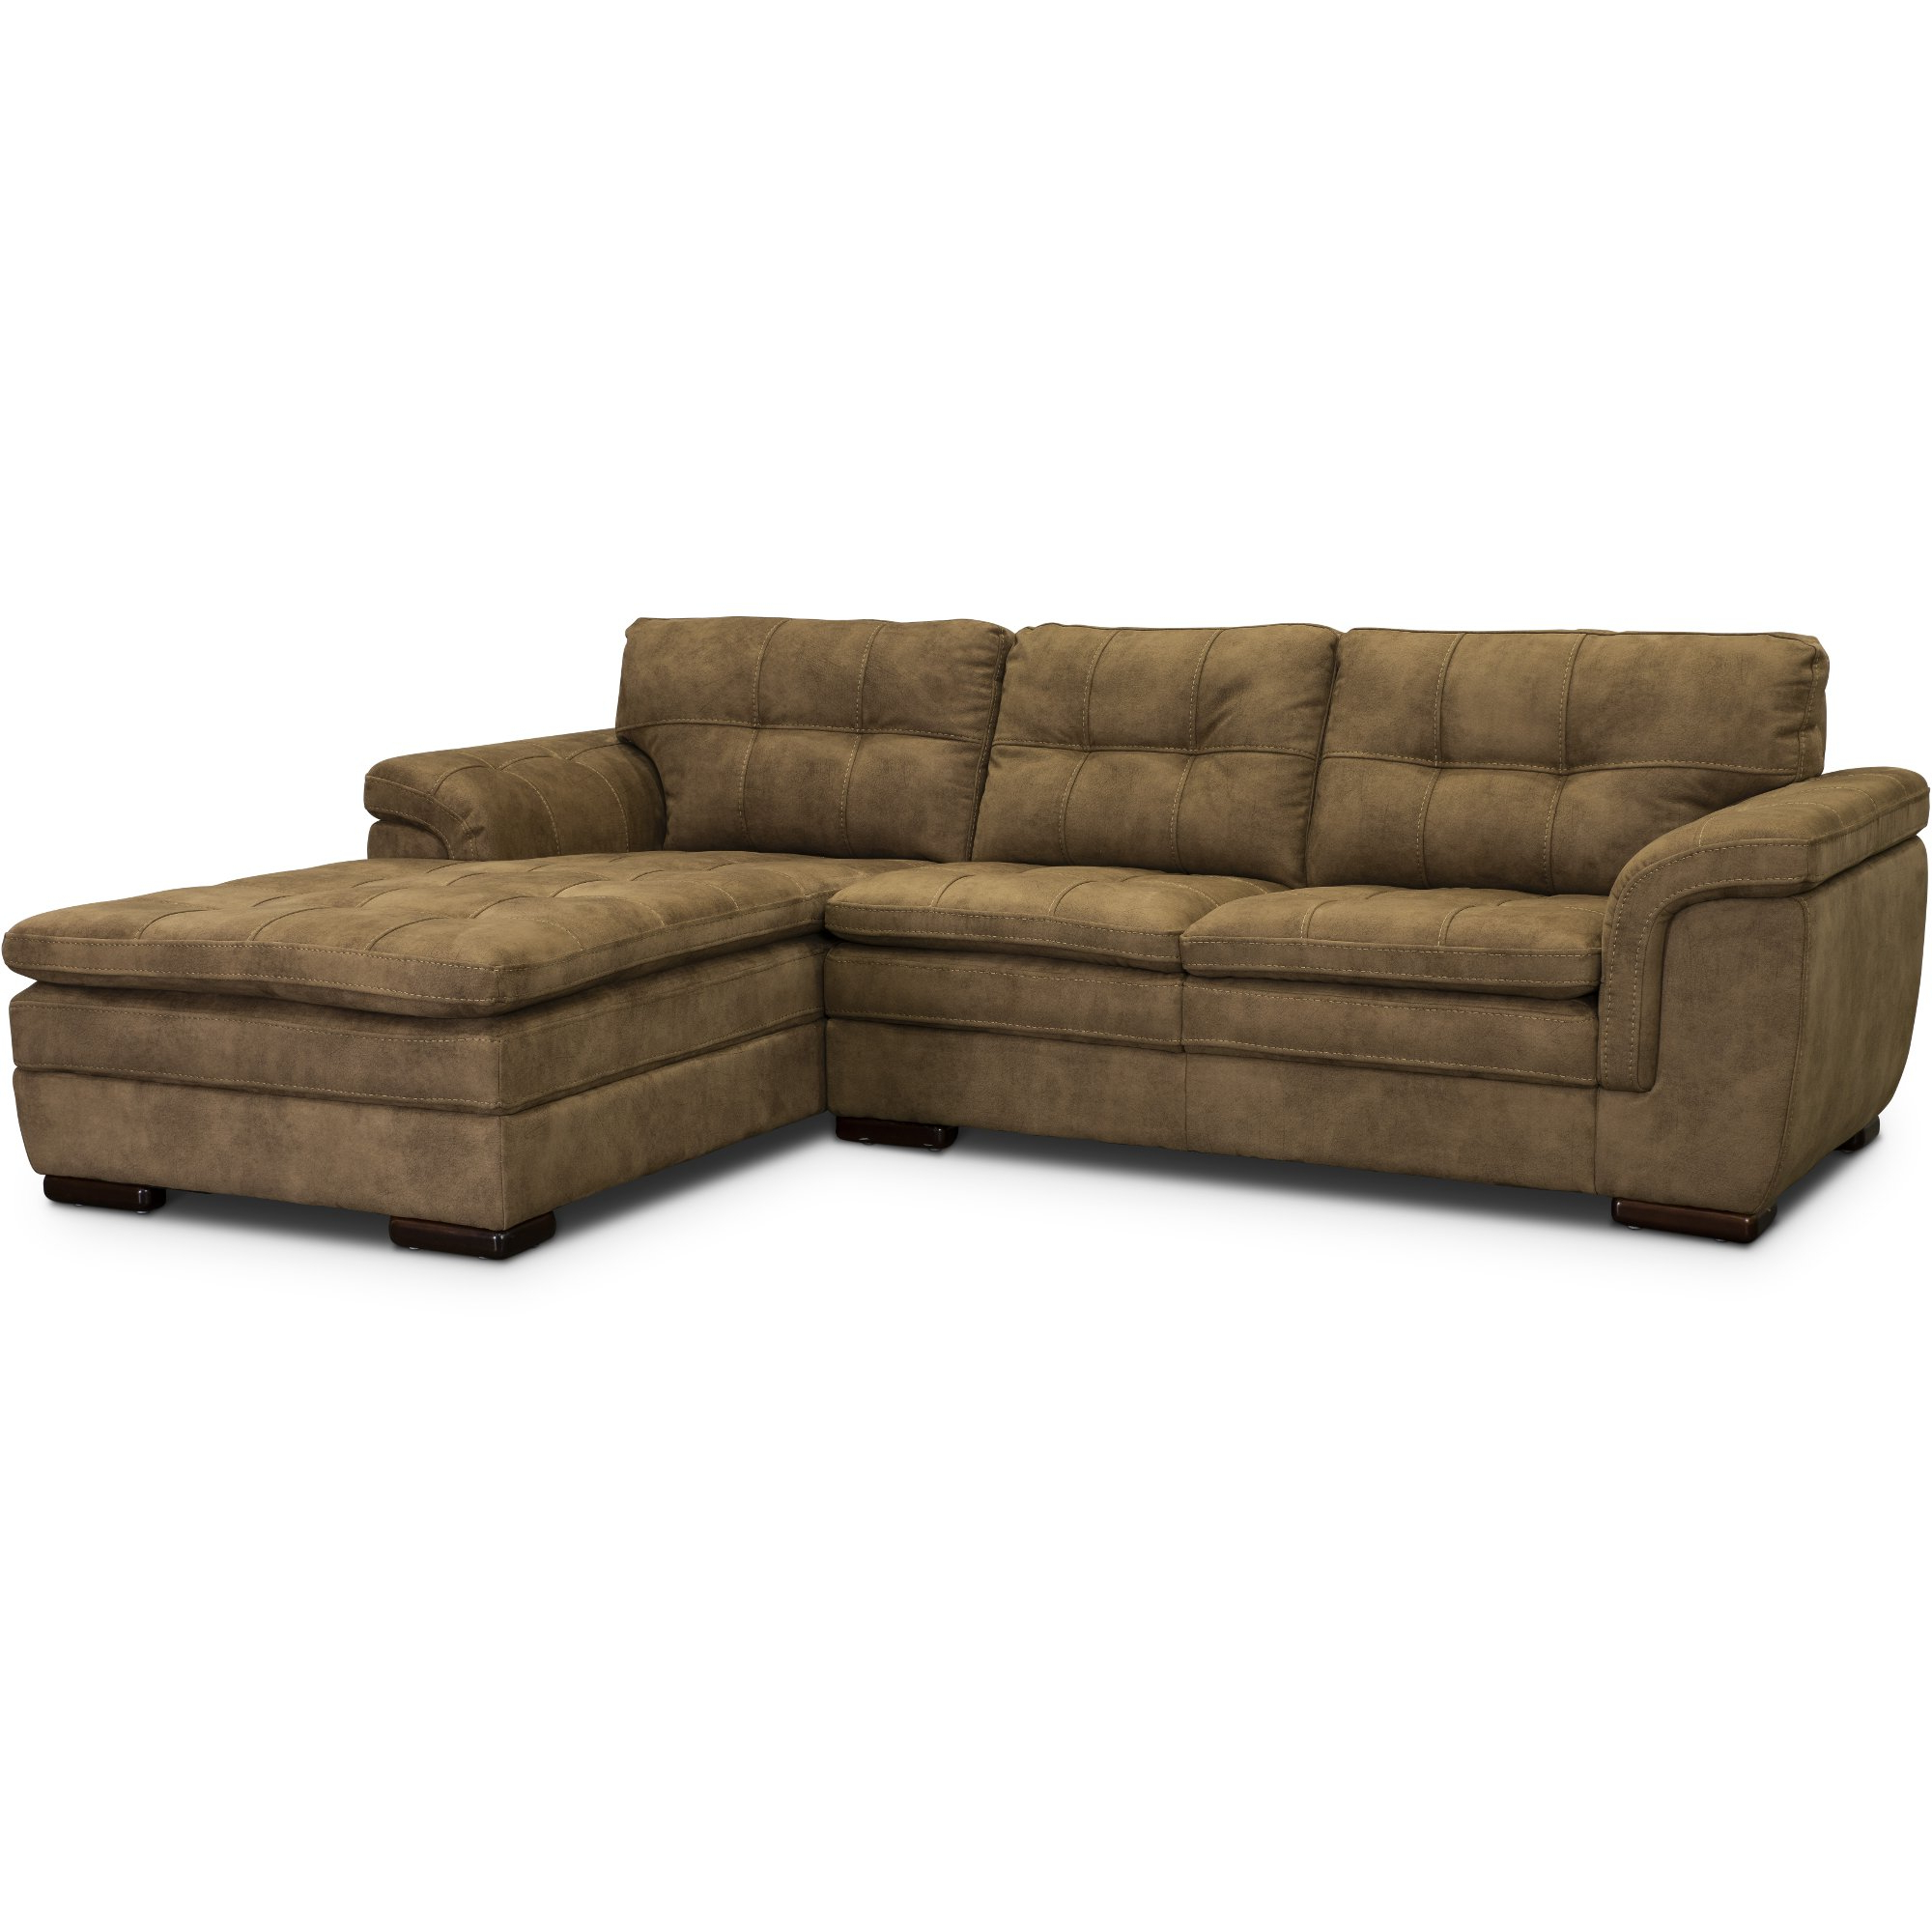 Famous 2 Piece Sectional Sofa Chaise – Latest Sofa Pictures Pertaining To 2Pc Maddox Left Arm Facing Sectional Sofas With Chaise Brown (View 12 of 25)